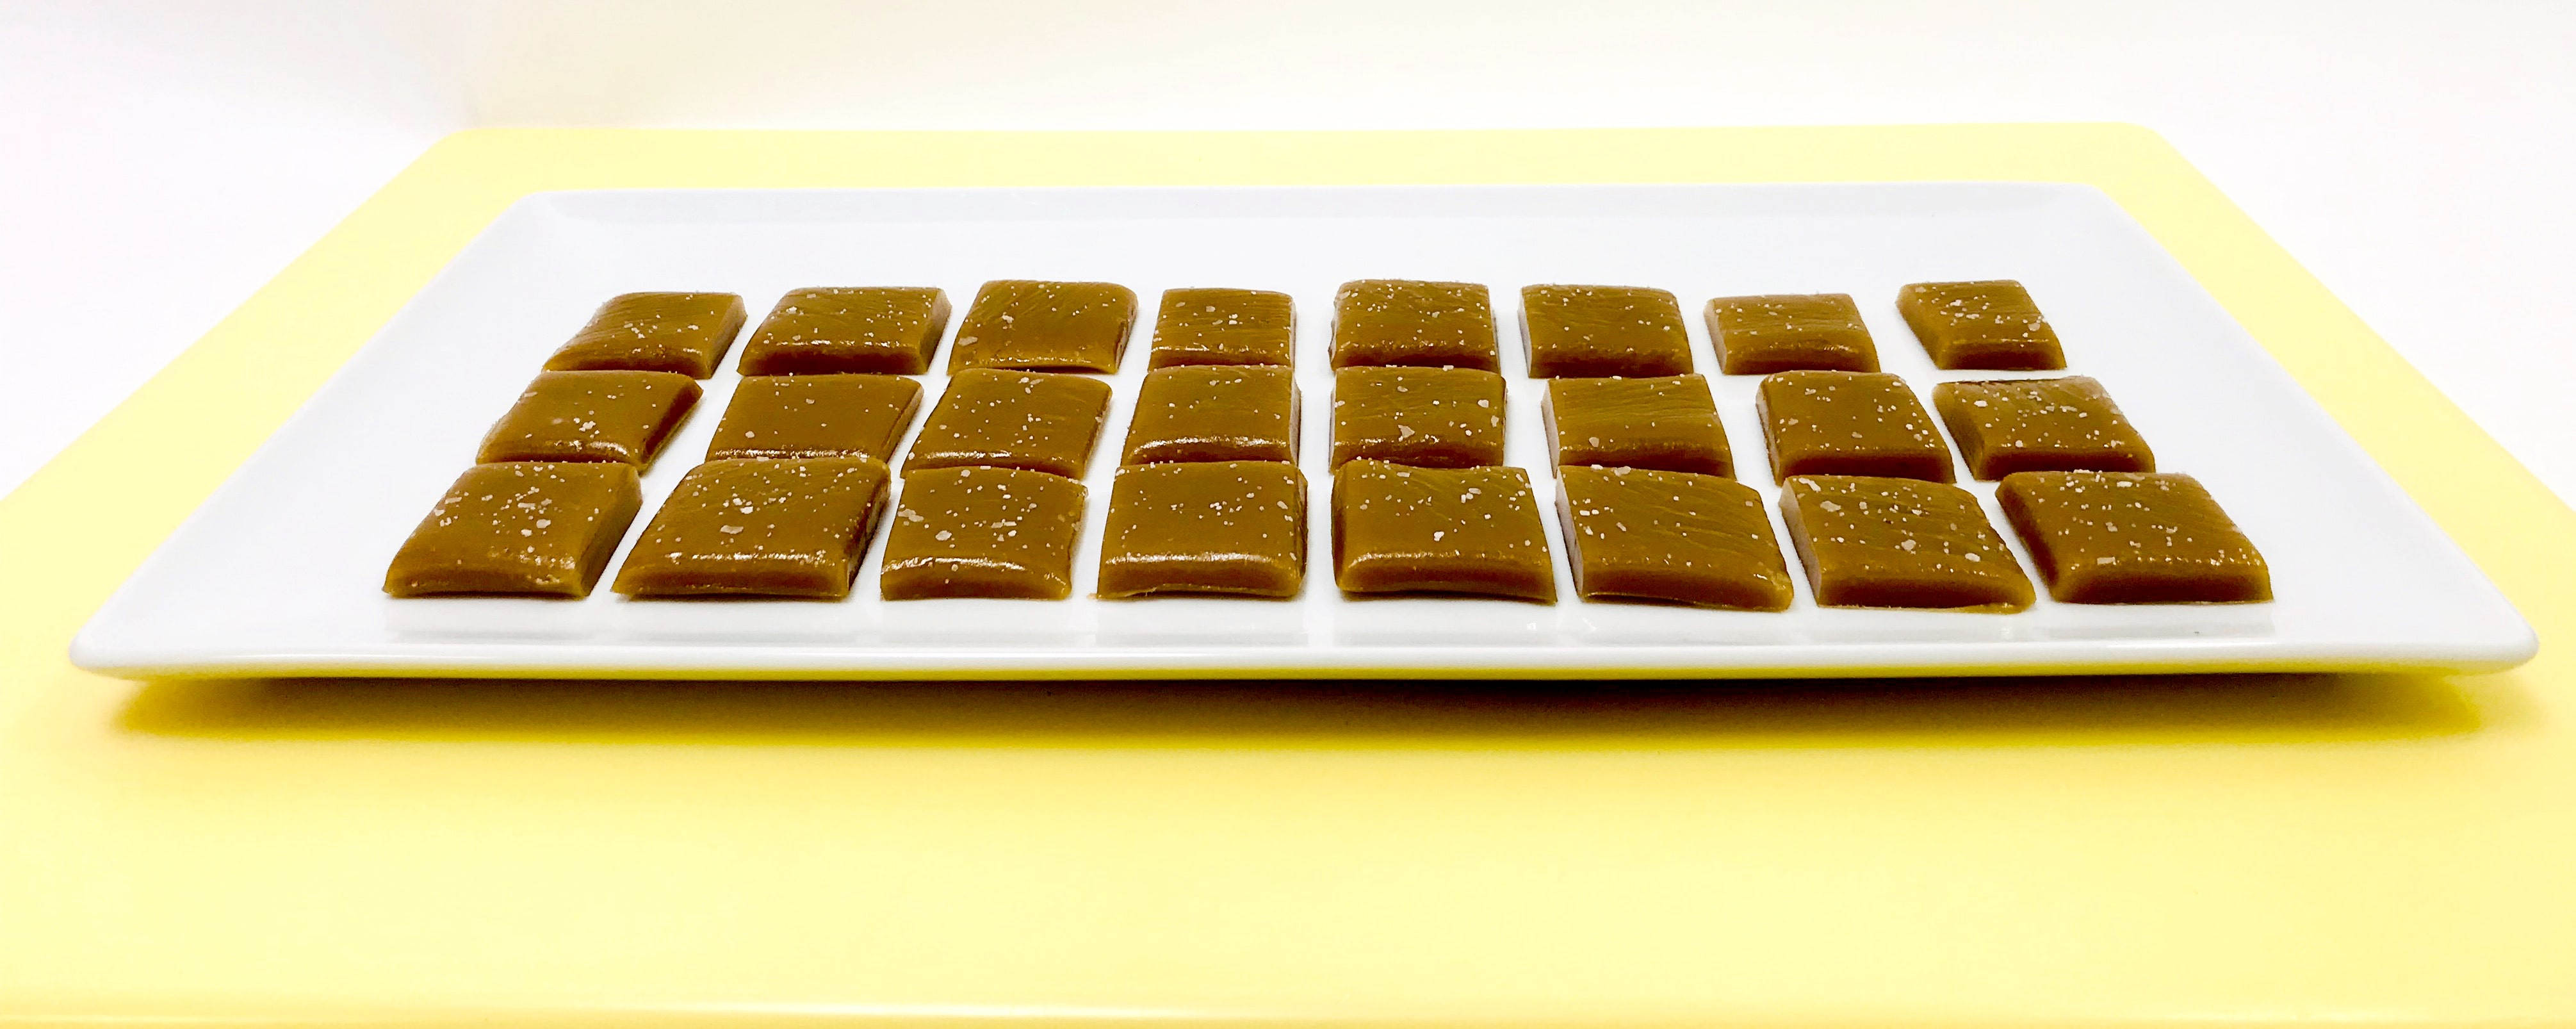 How to Make Cannabis Salted Caramel Candy